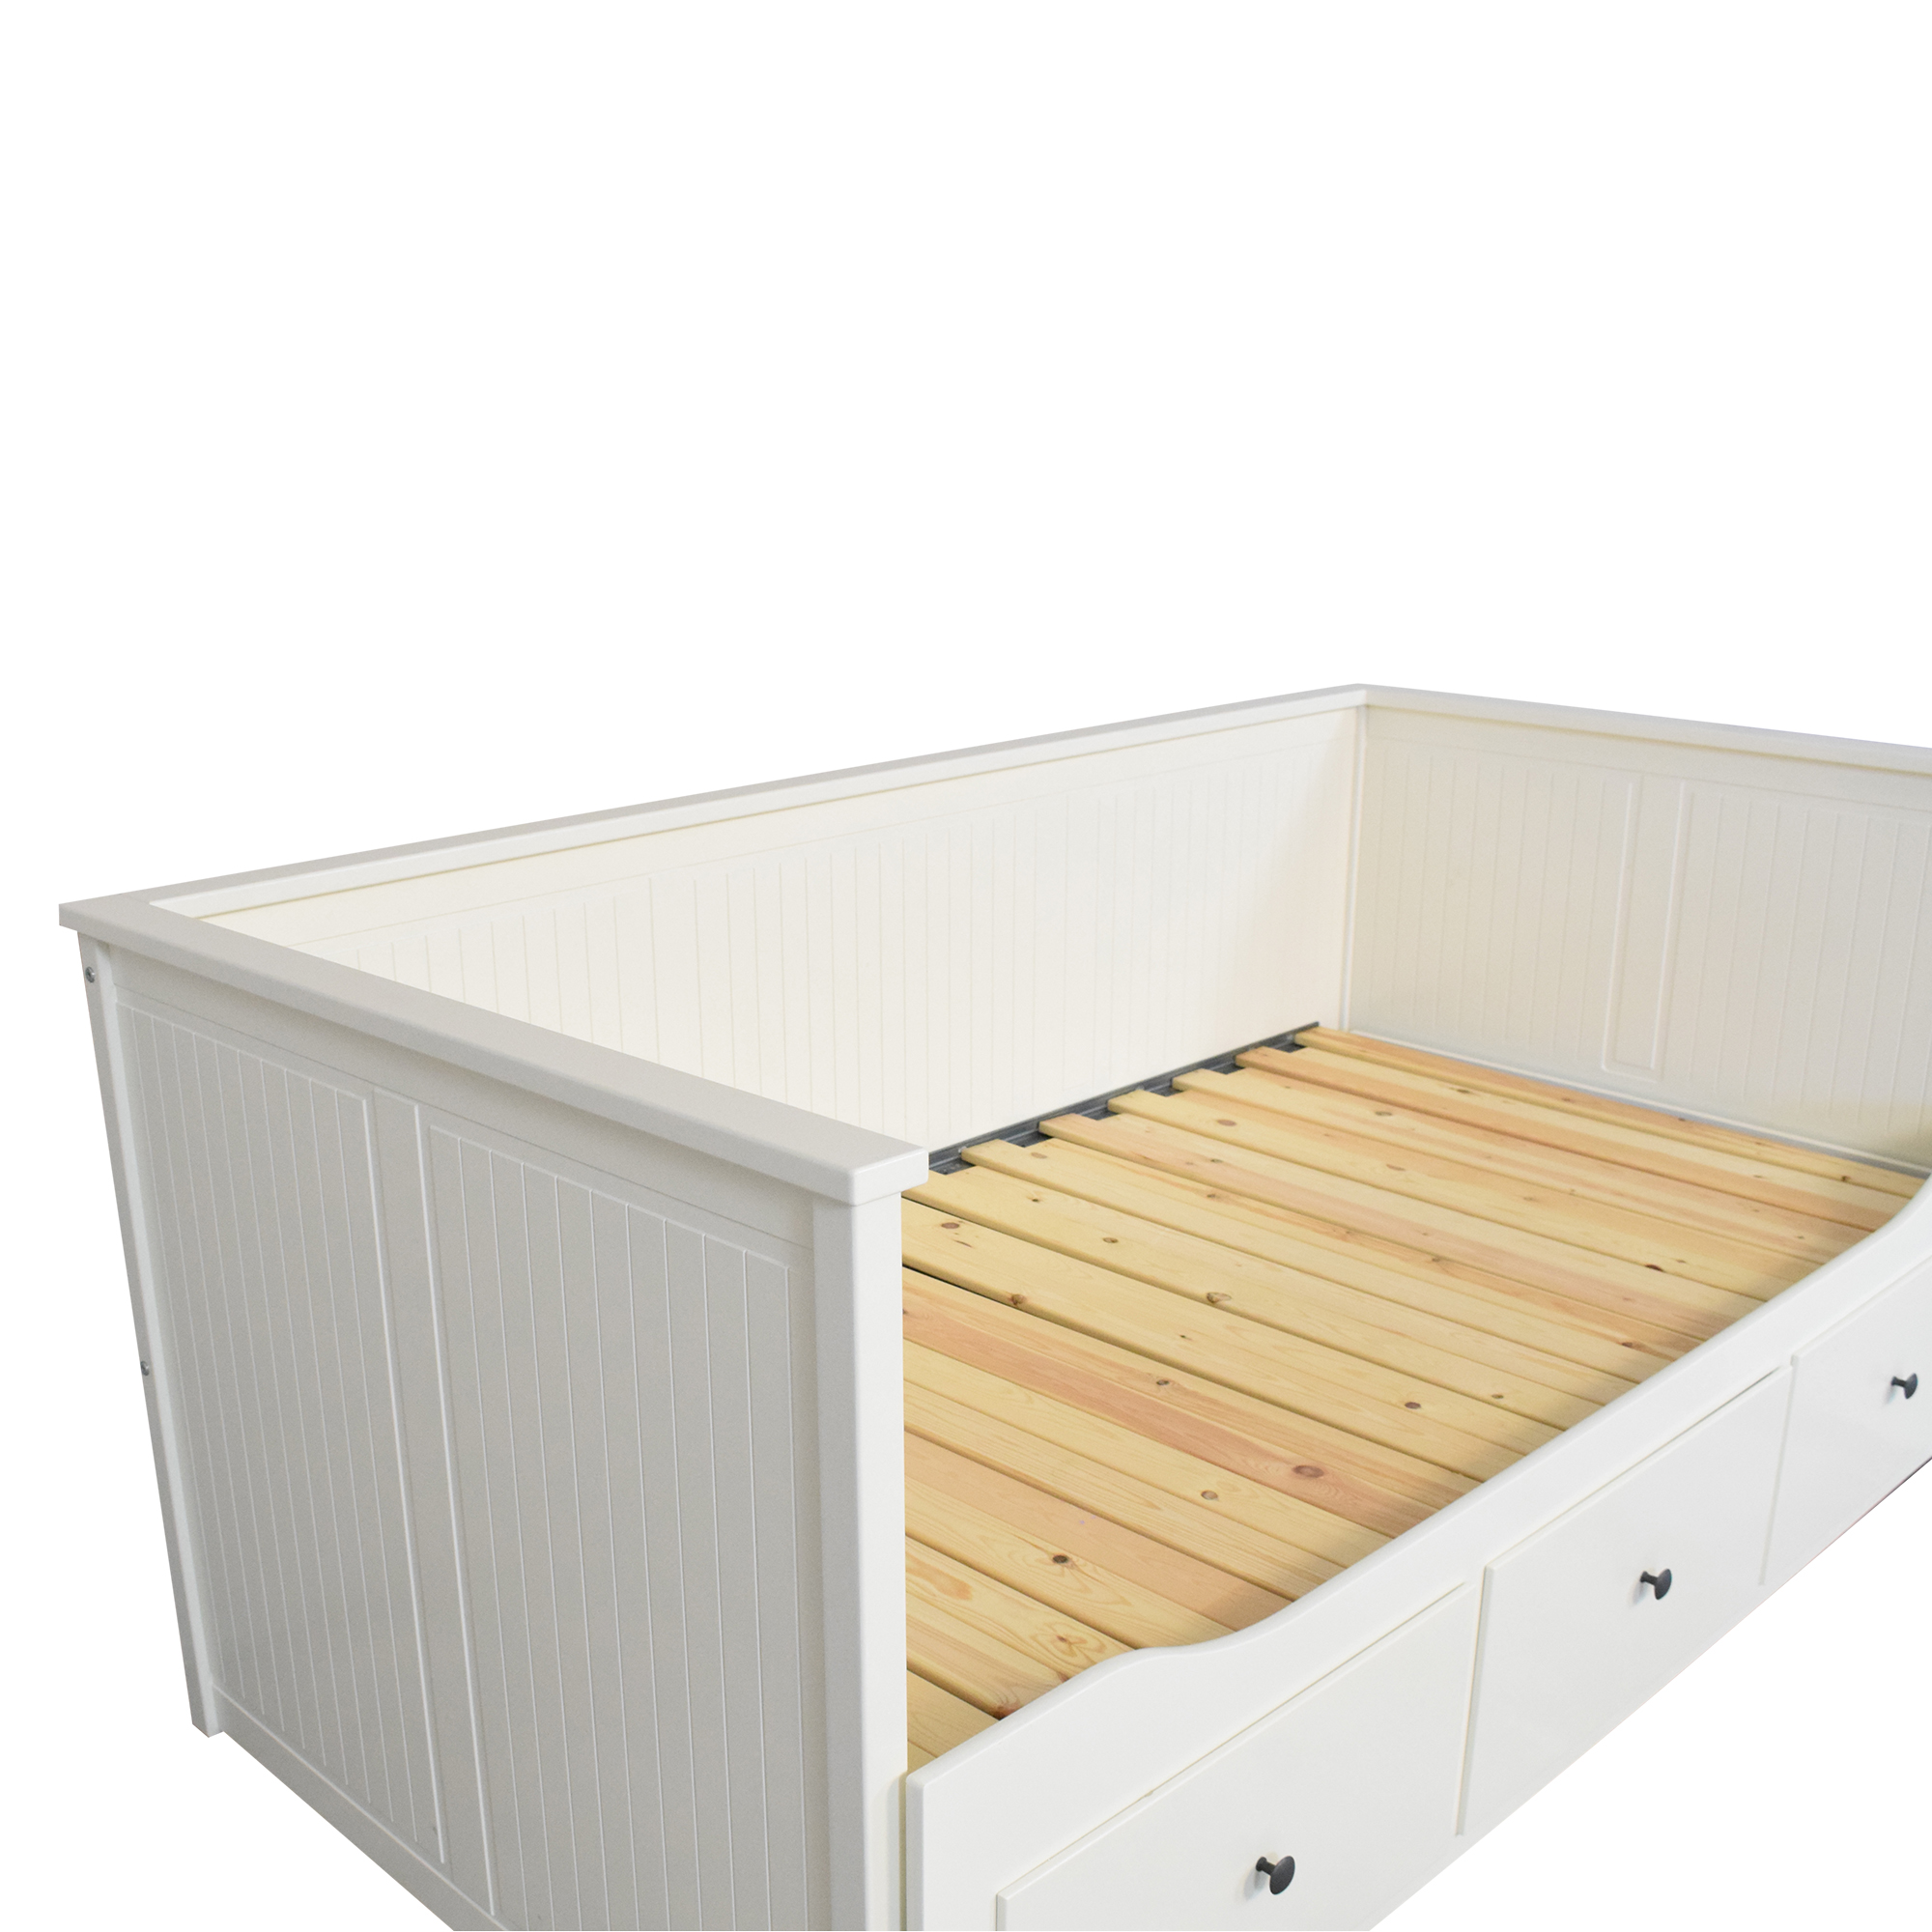 IKEA IKEA HEMNES Storage Daybed with Trundle ct